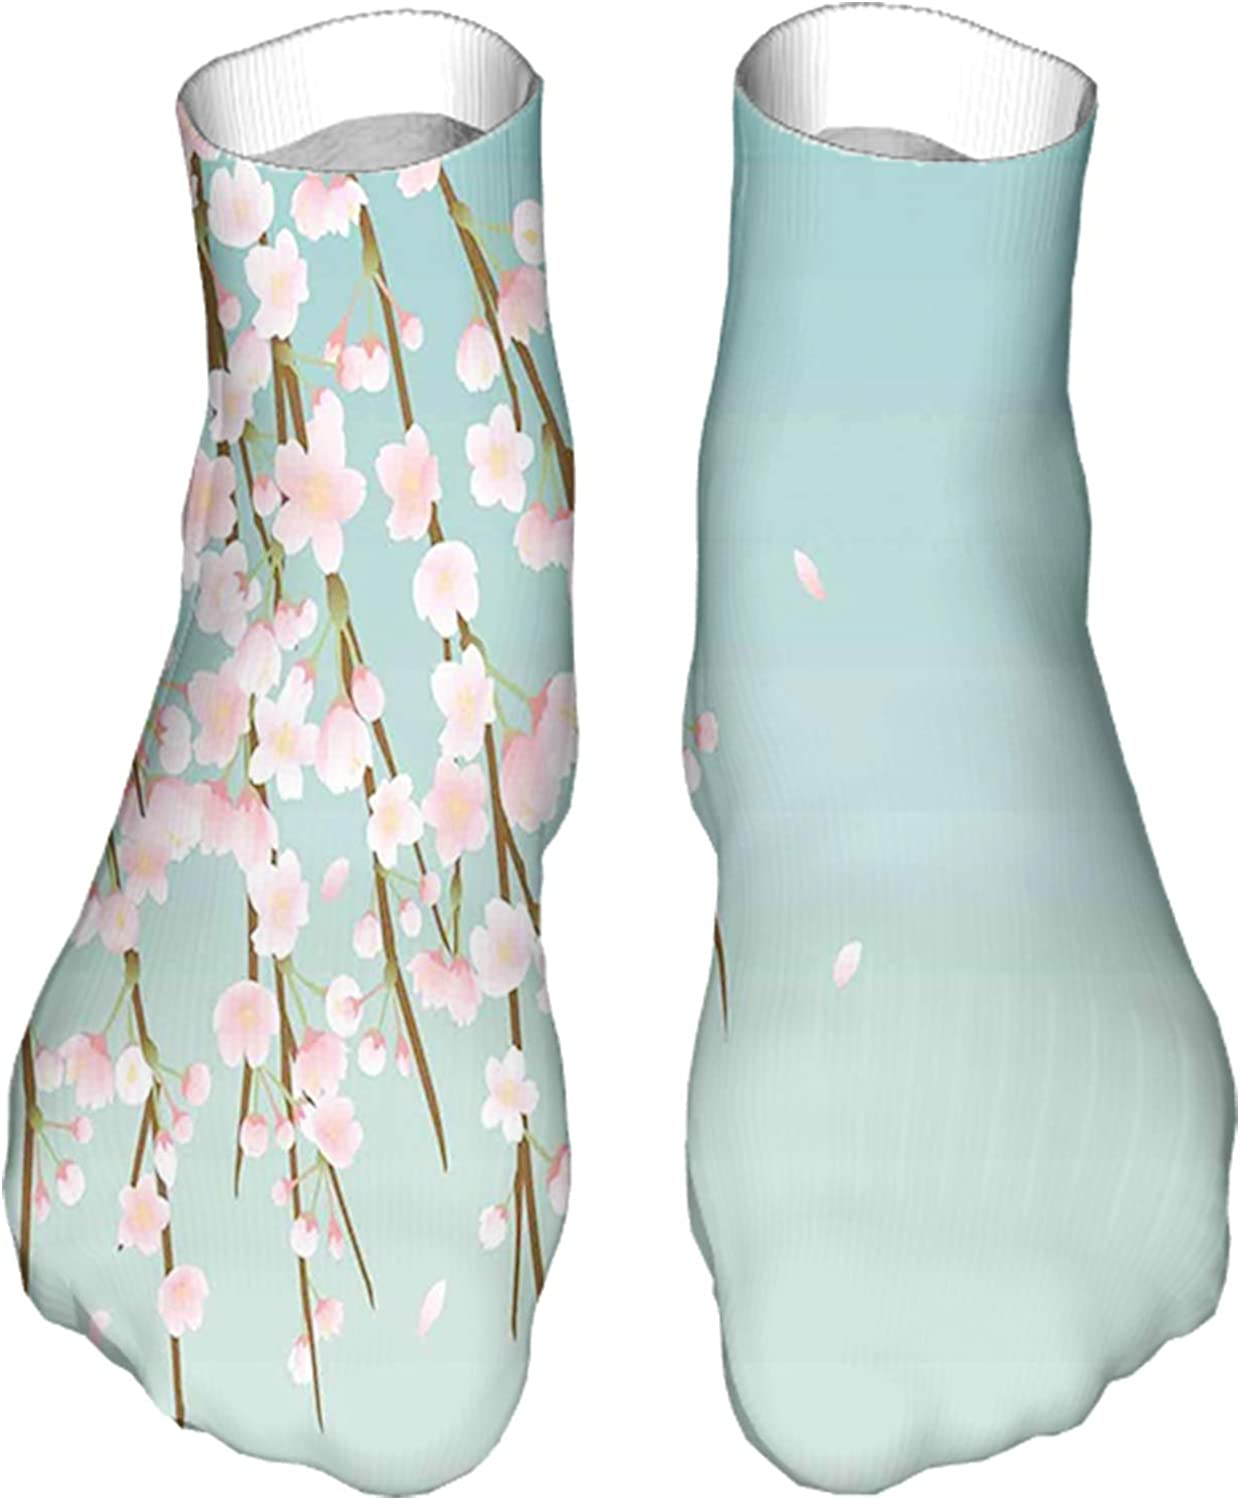 Men's and Women's Fun Socks Printed Cool Novelty Funny Socks,Freshly Blooming Cherry Blossom Branches with Flower Buds